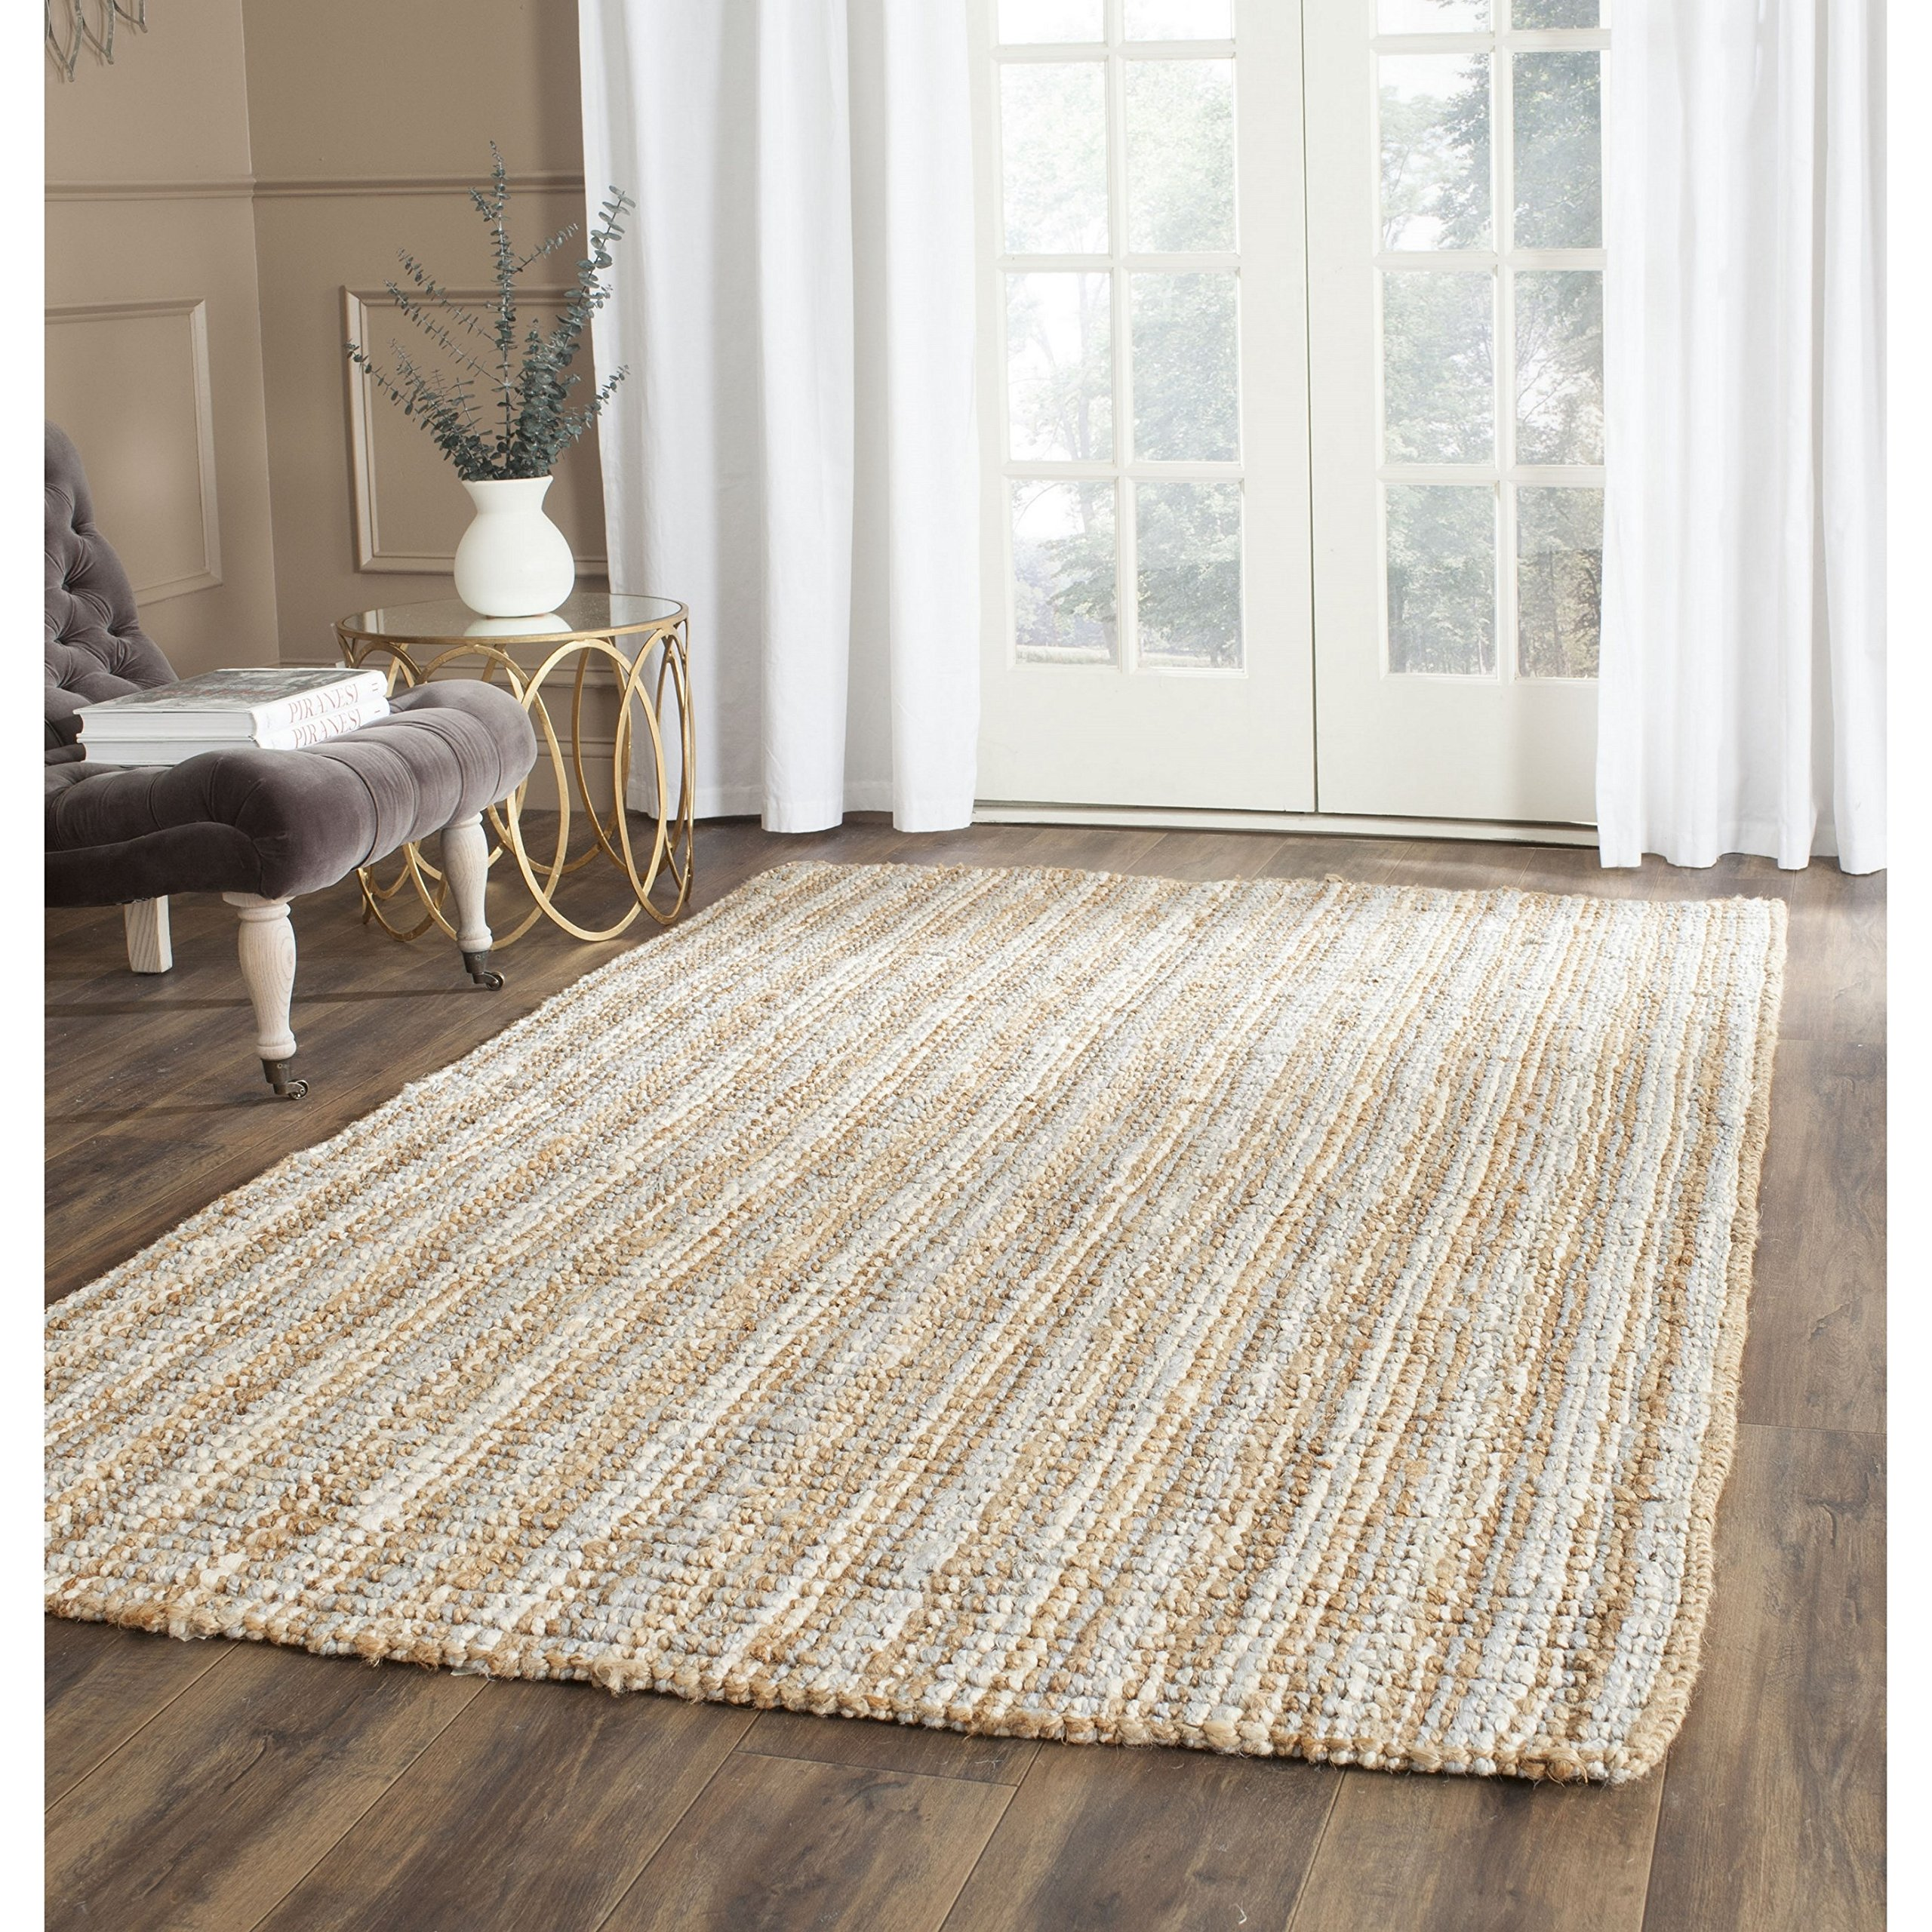 Safavieh Natural Fiber Collection NF447K Hand Woven Grey and Natural Jute Square Area Rug (8' Square)